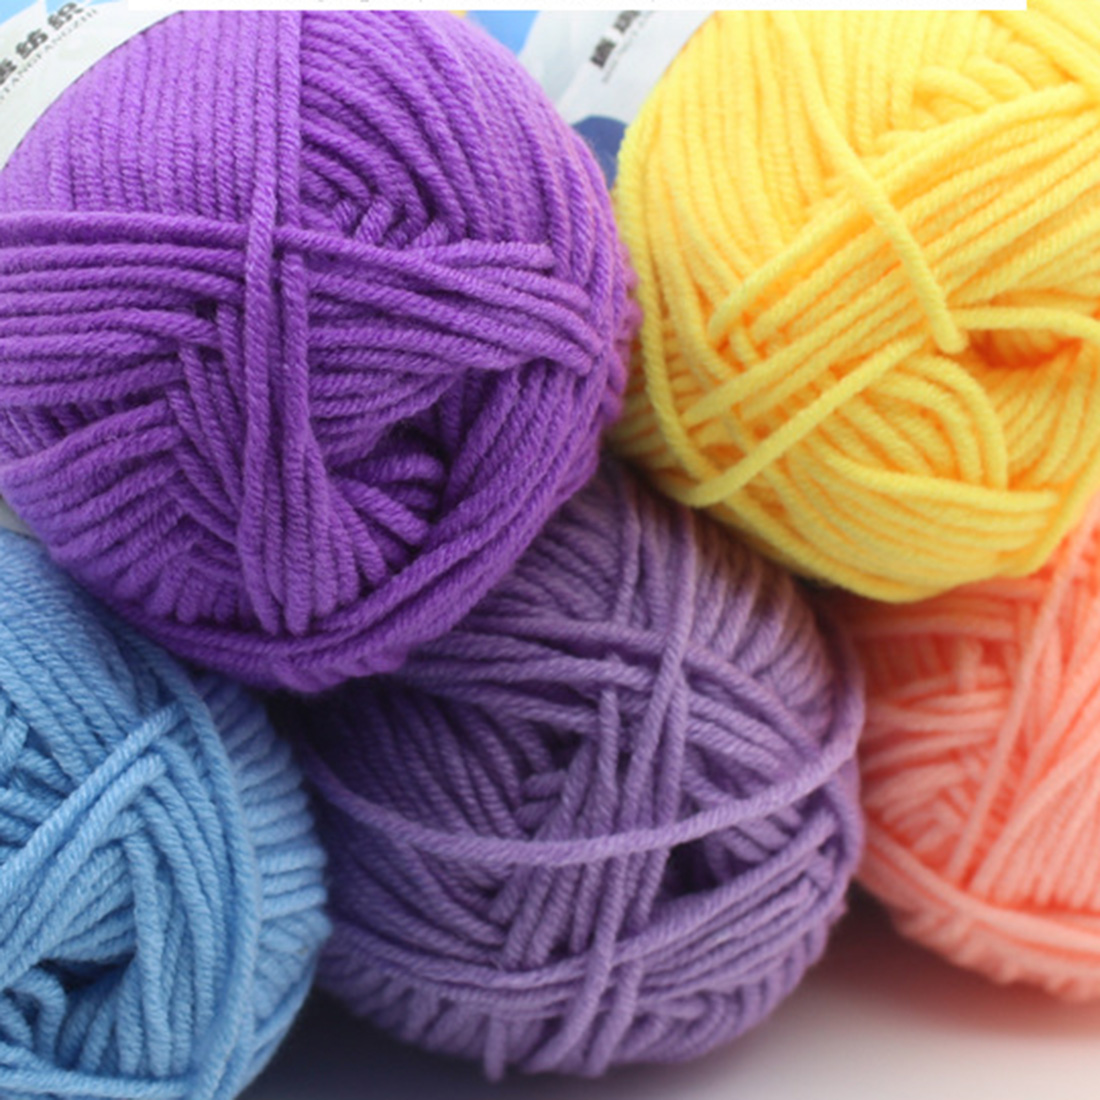 Crochet Yarn : Online Buy Wholesale crochet yarn from China crochet yarn Wholesalers ...